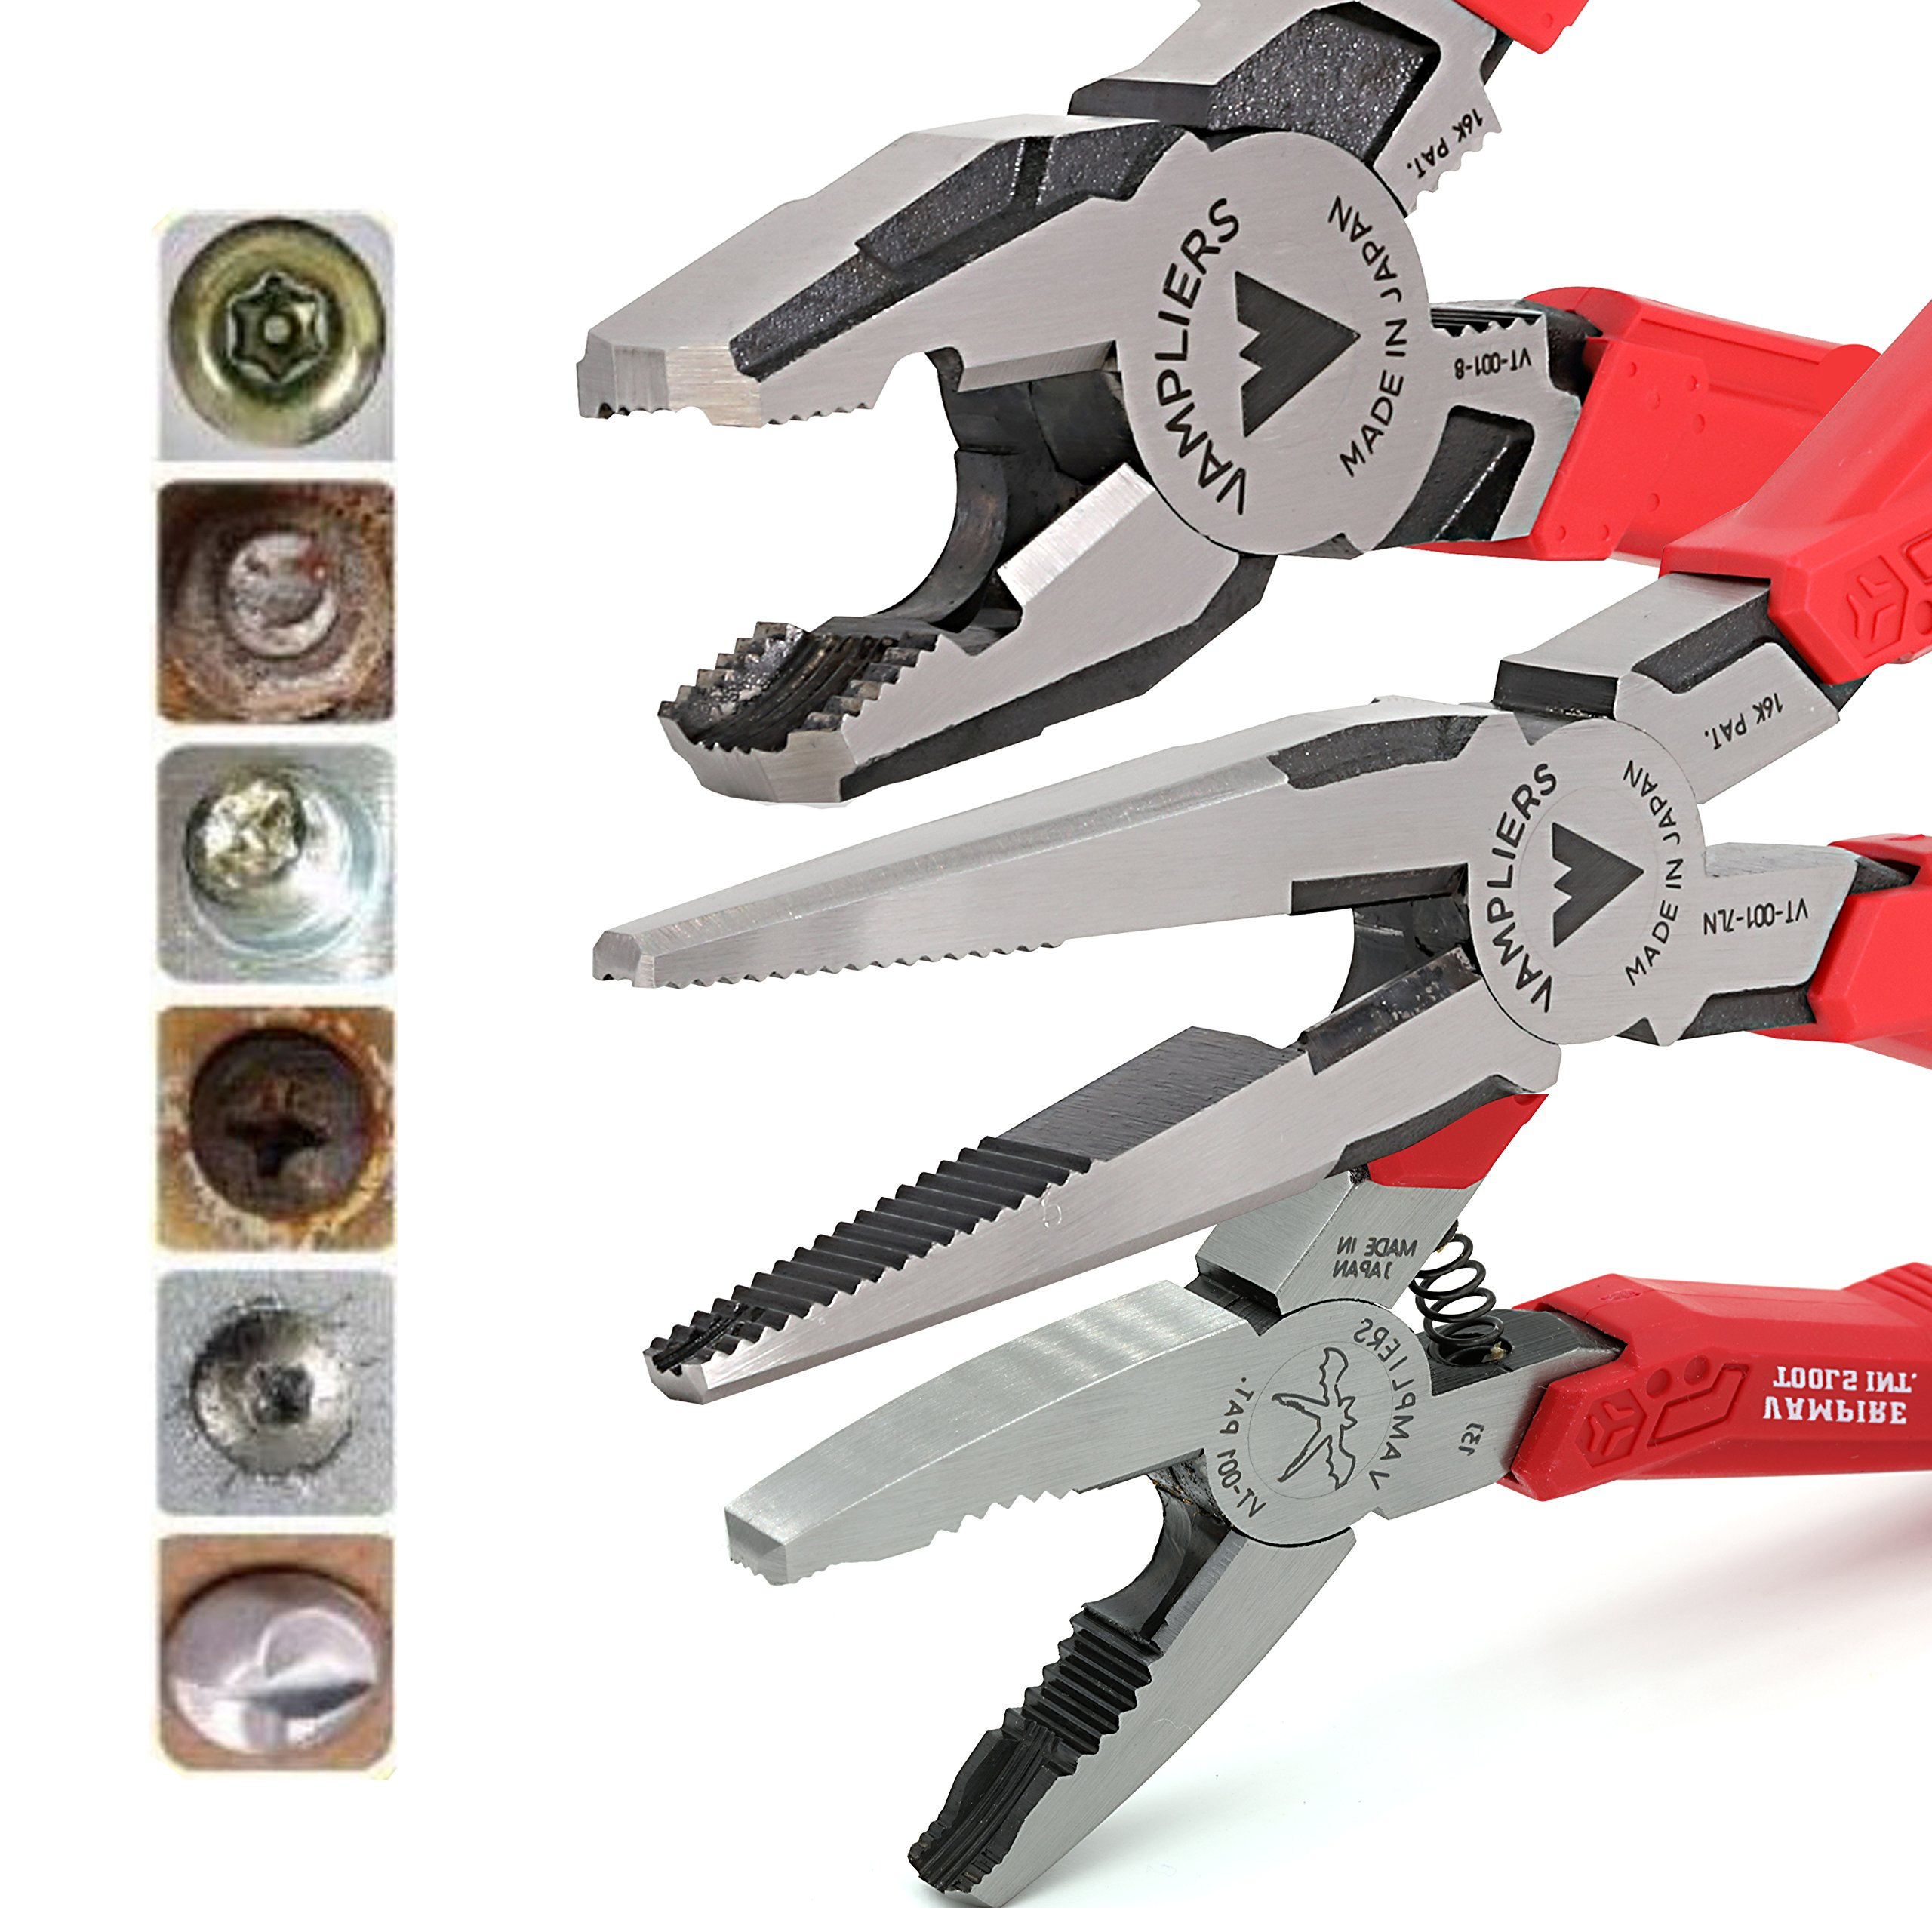 VamPLIERS. World's Best Pliers! 3-PC Set S3F Specialty Screw Extraction Pliers. Extract Stripped Stuck Security, Corroded, or Rusted Screws by Vampire Professional Tools International